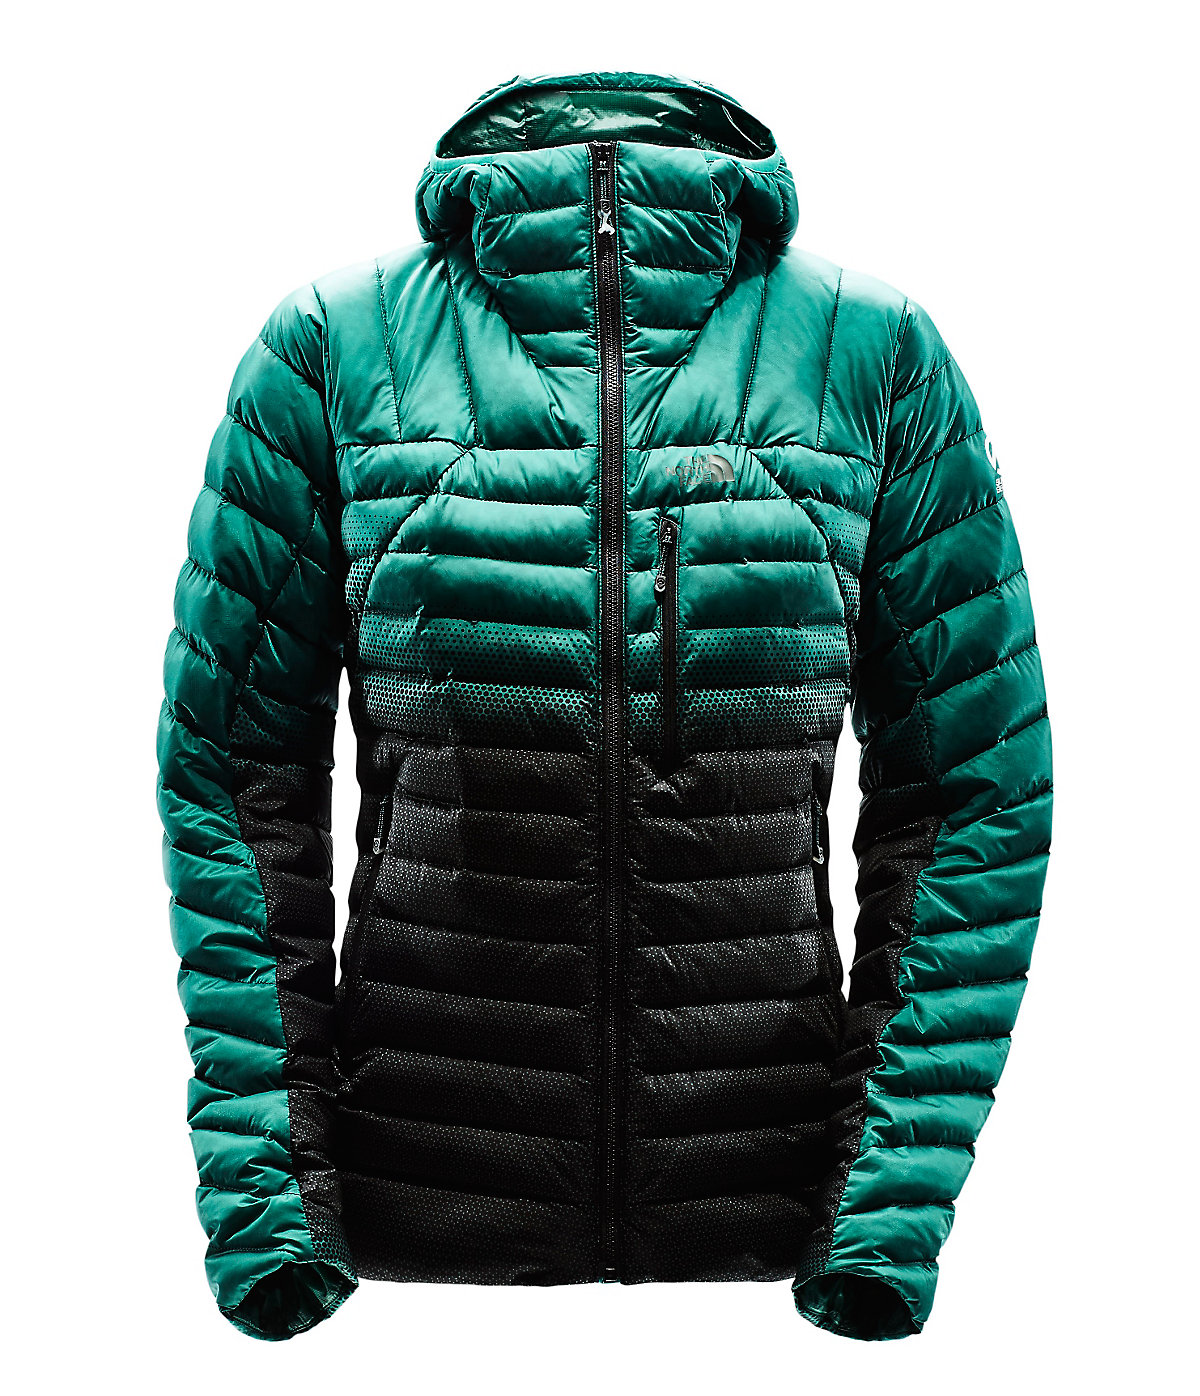 84dcefc7b The North Face Women's Summit L3 Down Mid-Layer Jacket